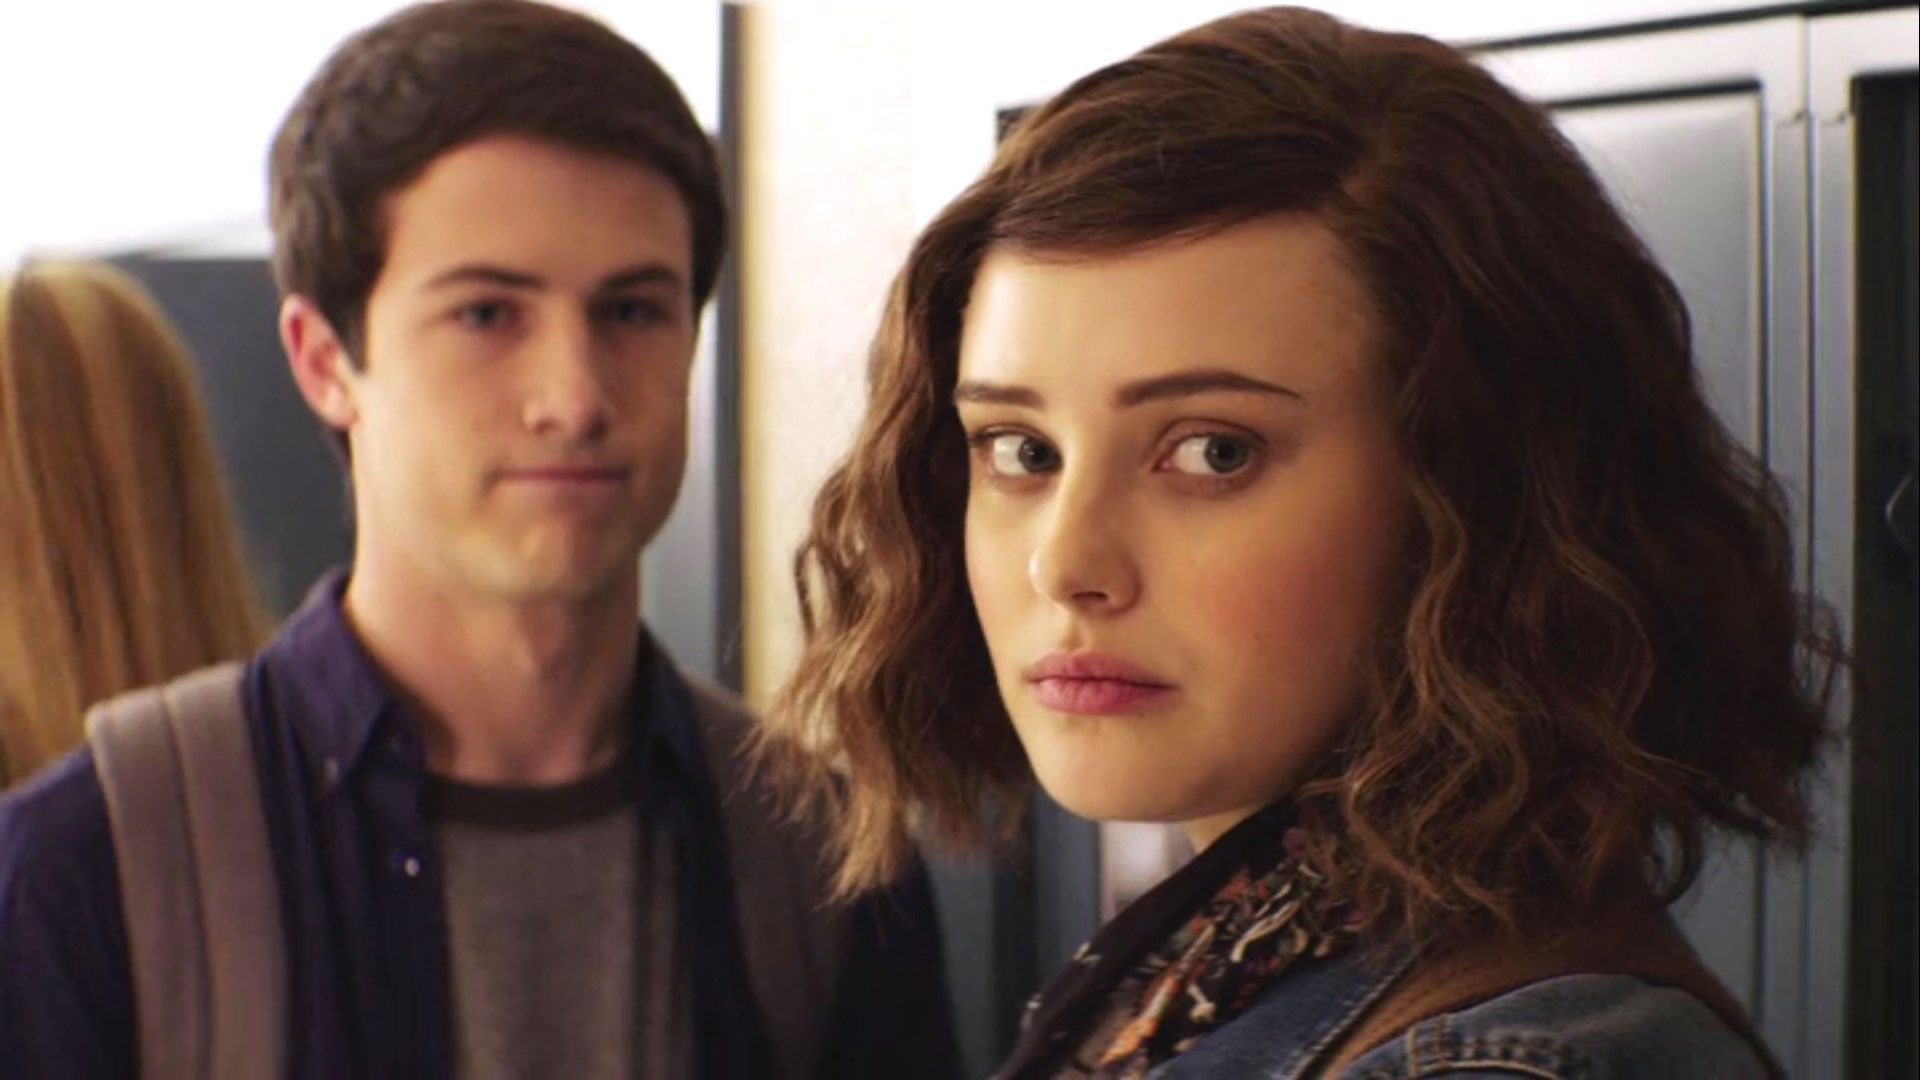 13 Reasons Why' Season 3 News, Date, Cast, Spoilers and Theories